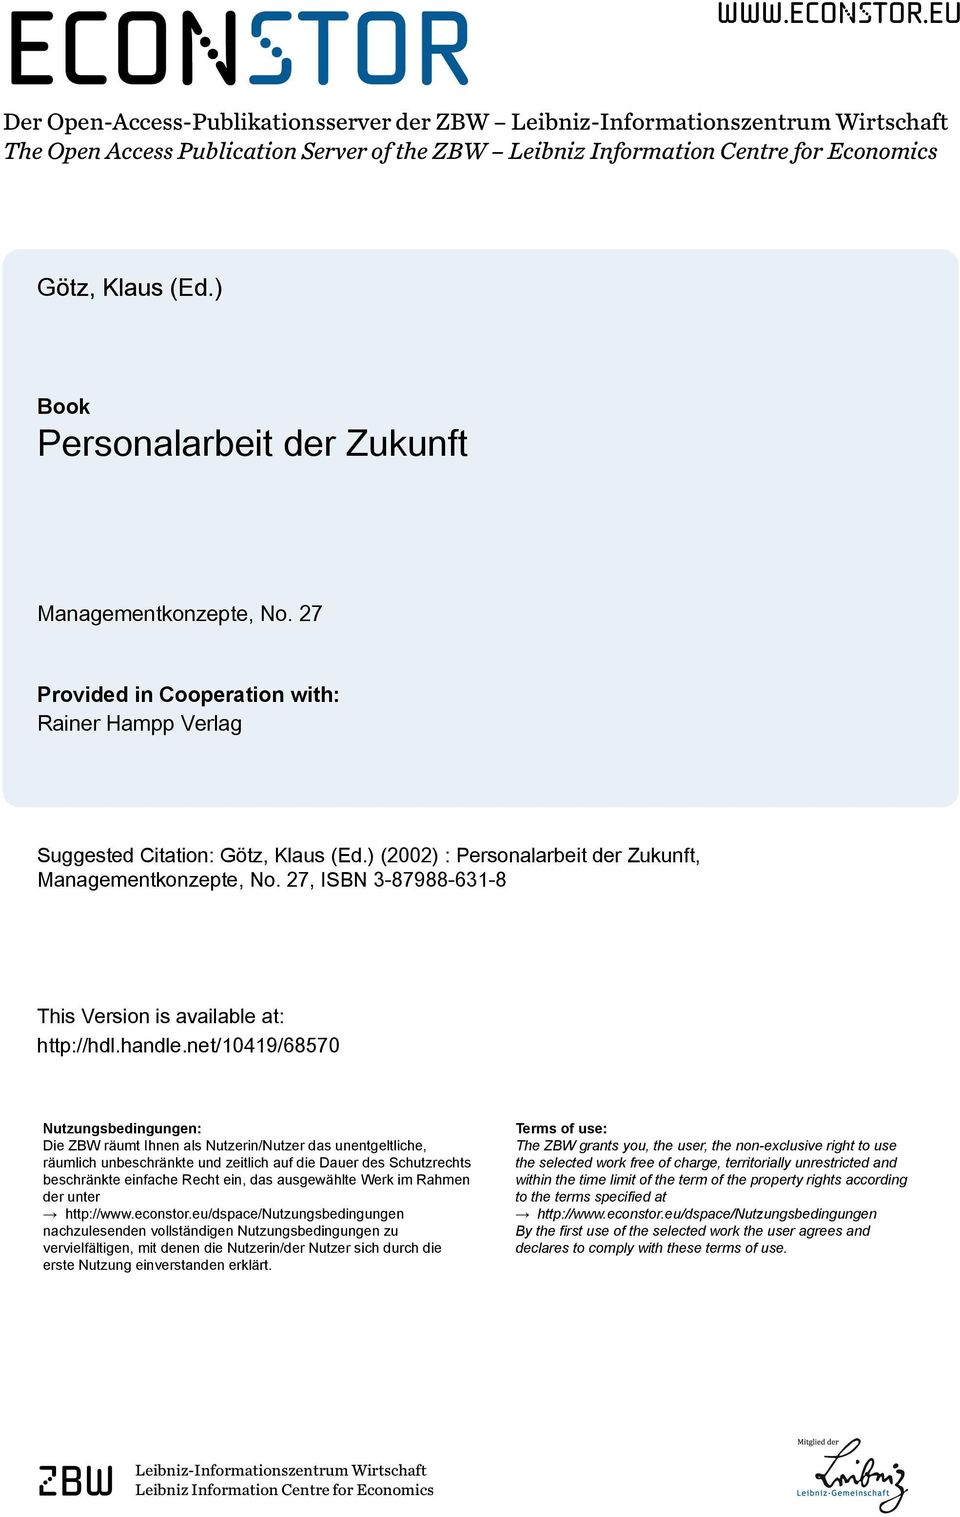 ) (2002) : Personalarbeit der Zukunft, Managementkonzepte, No. 27, ISBN 3-87988-631-8 This Version is available at: http://hdl.handle.